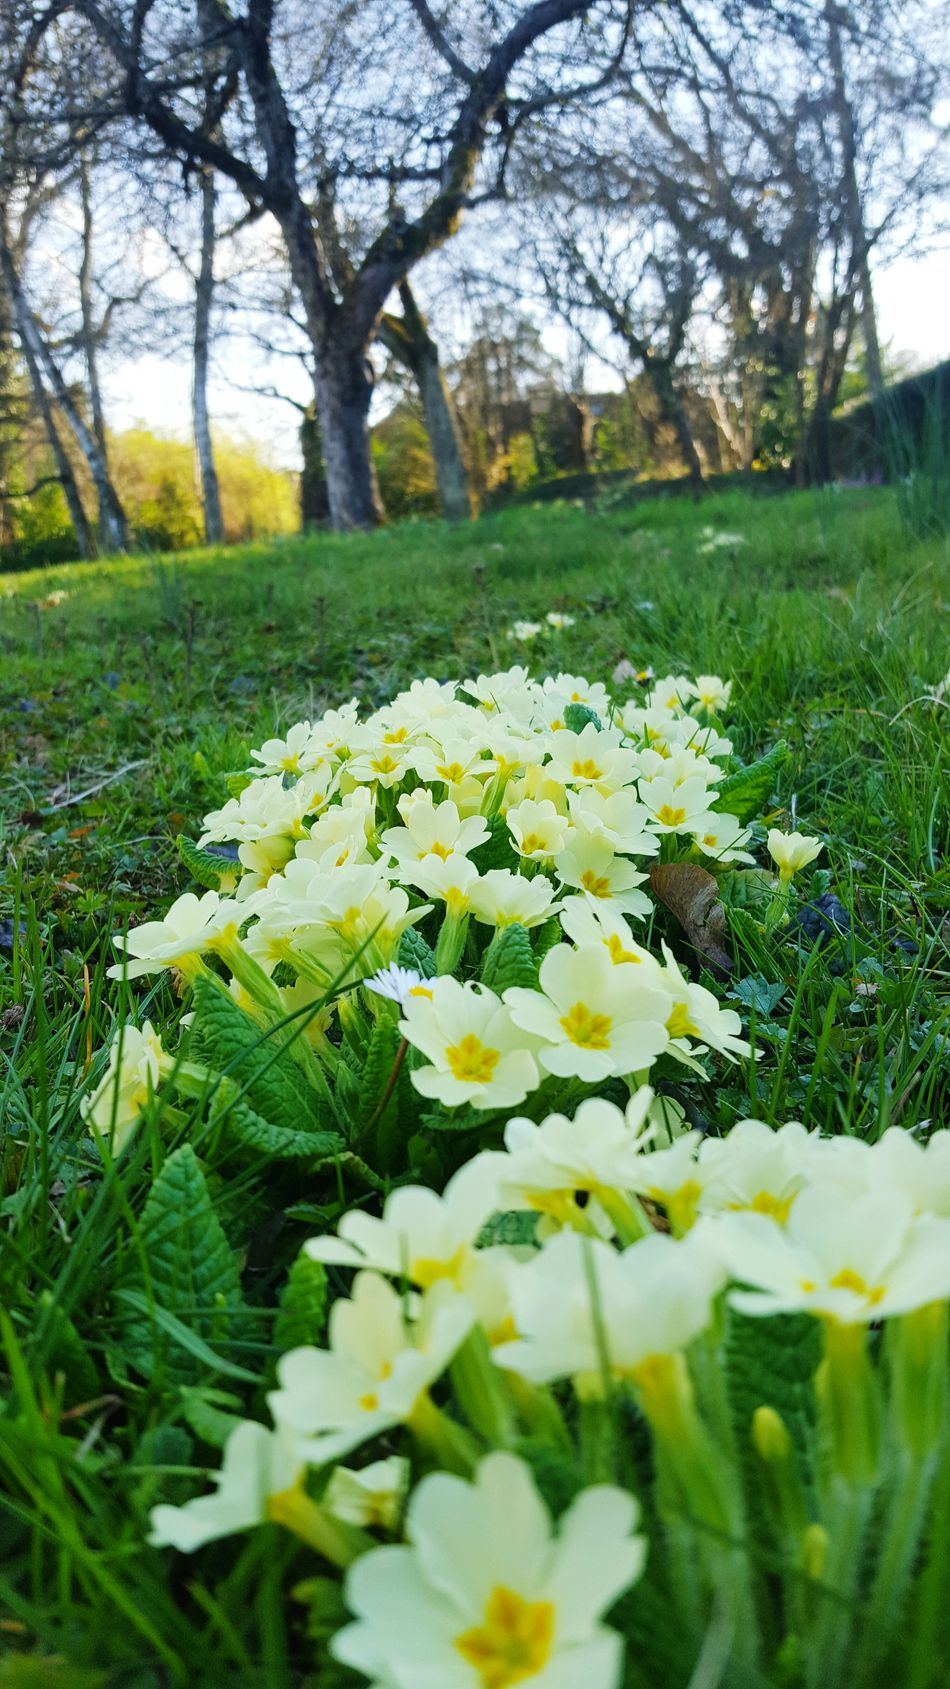 Flower Growth Nature Beauty In Nature Freshness Fragility Plant Flower Head Green Color Field Yellow Springtime Outdoors No People Blooming Day Tree Close-up Crocus